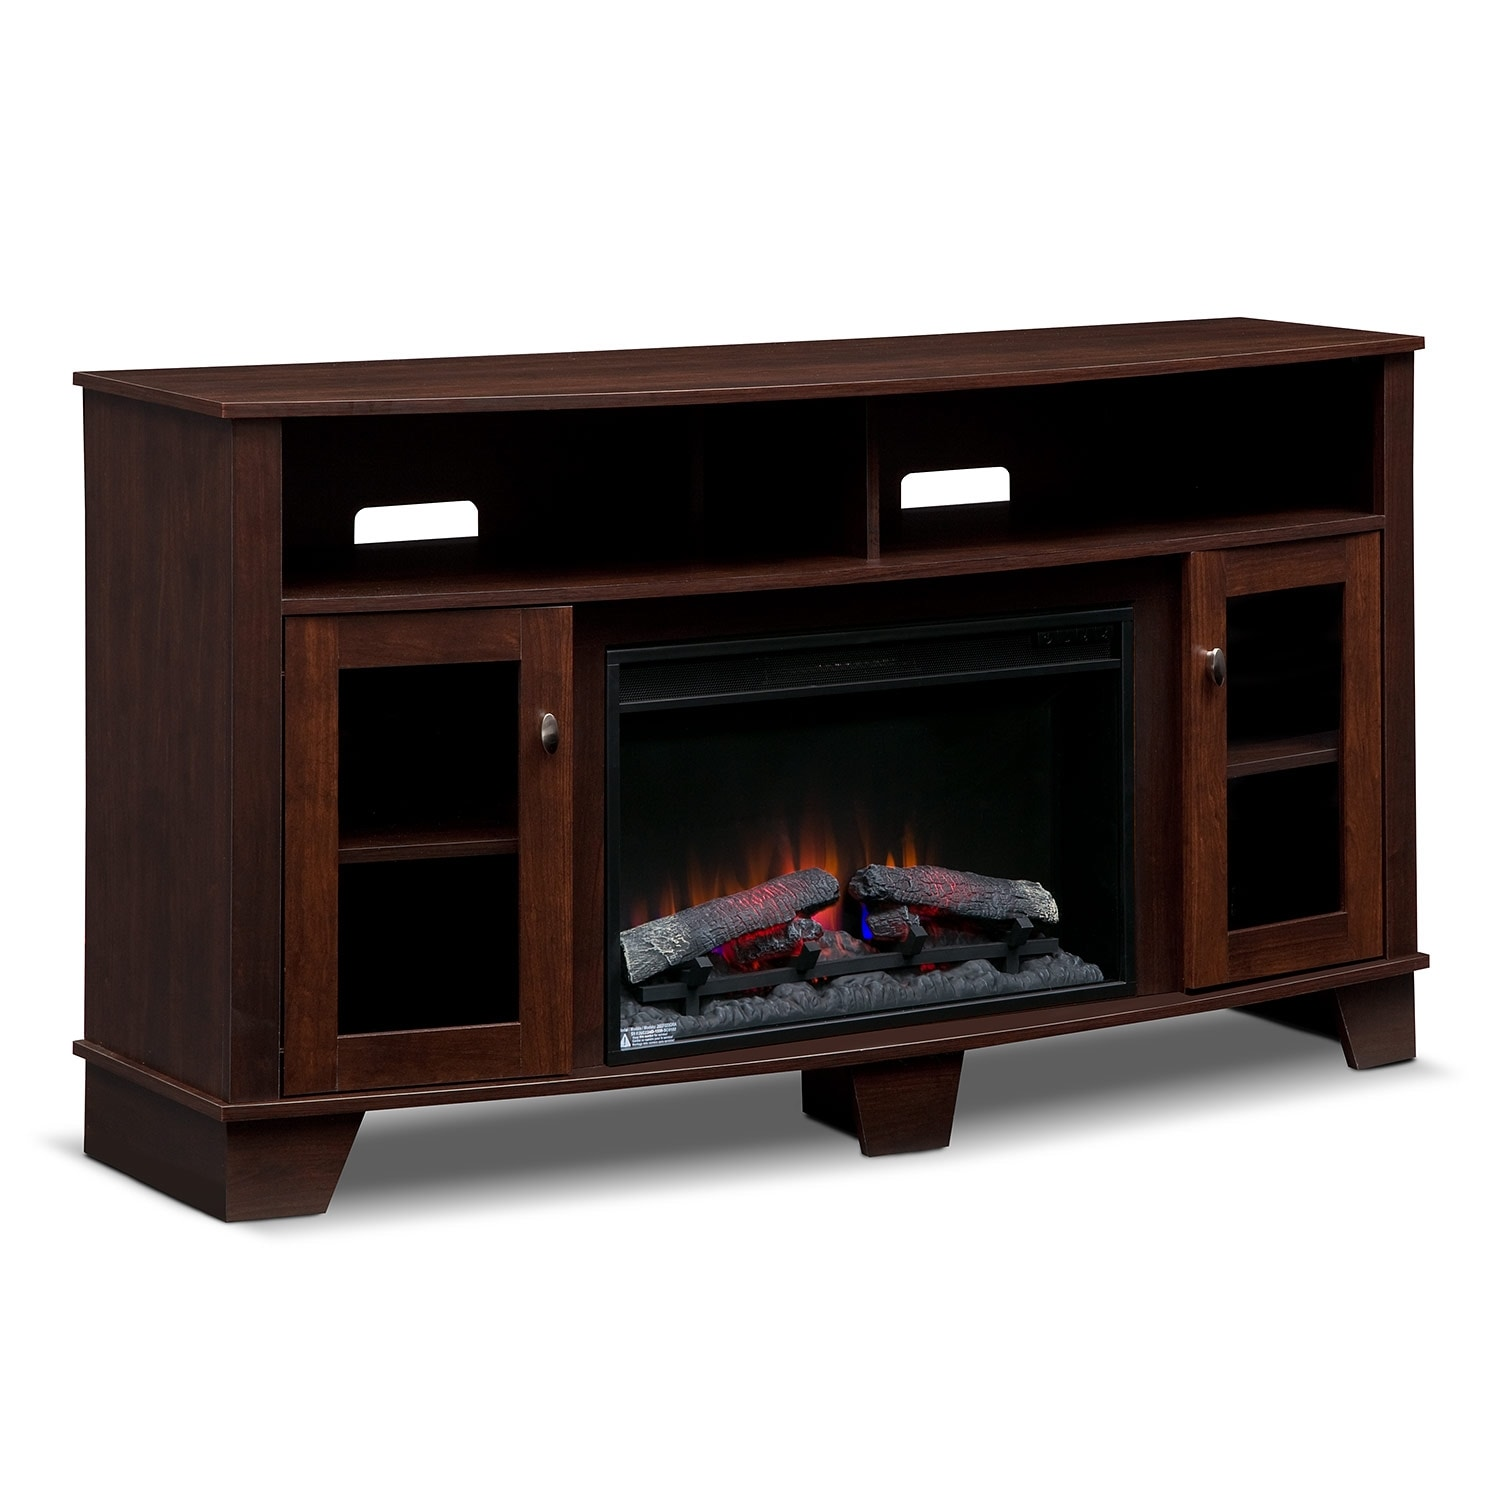 Bentwood Fireplace TV Stand with Traditional Insert - Dark Cherry